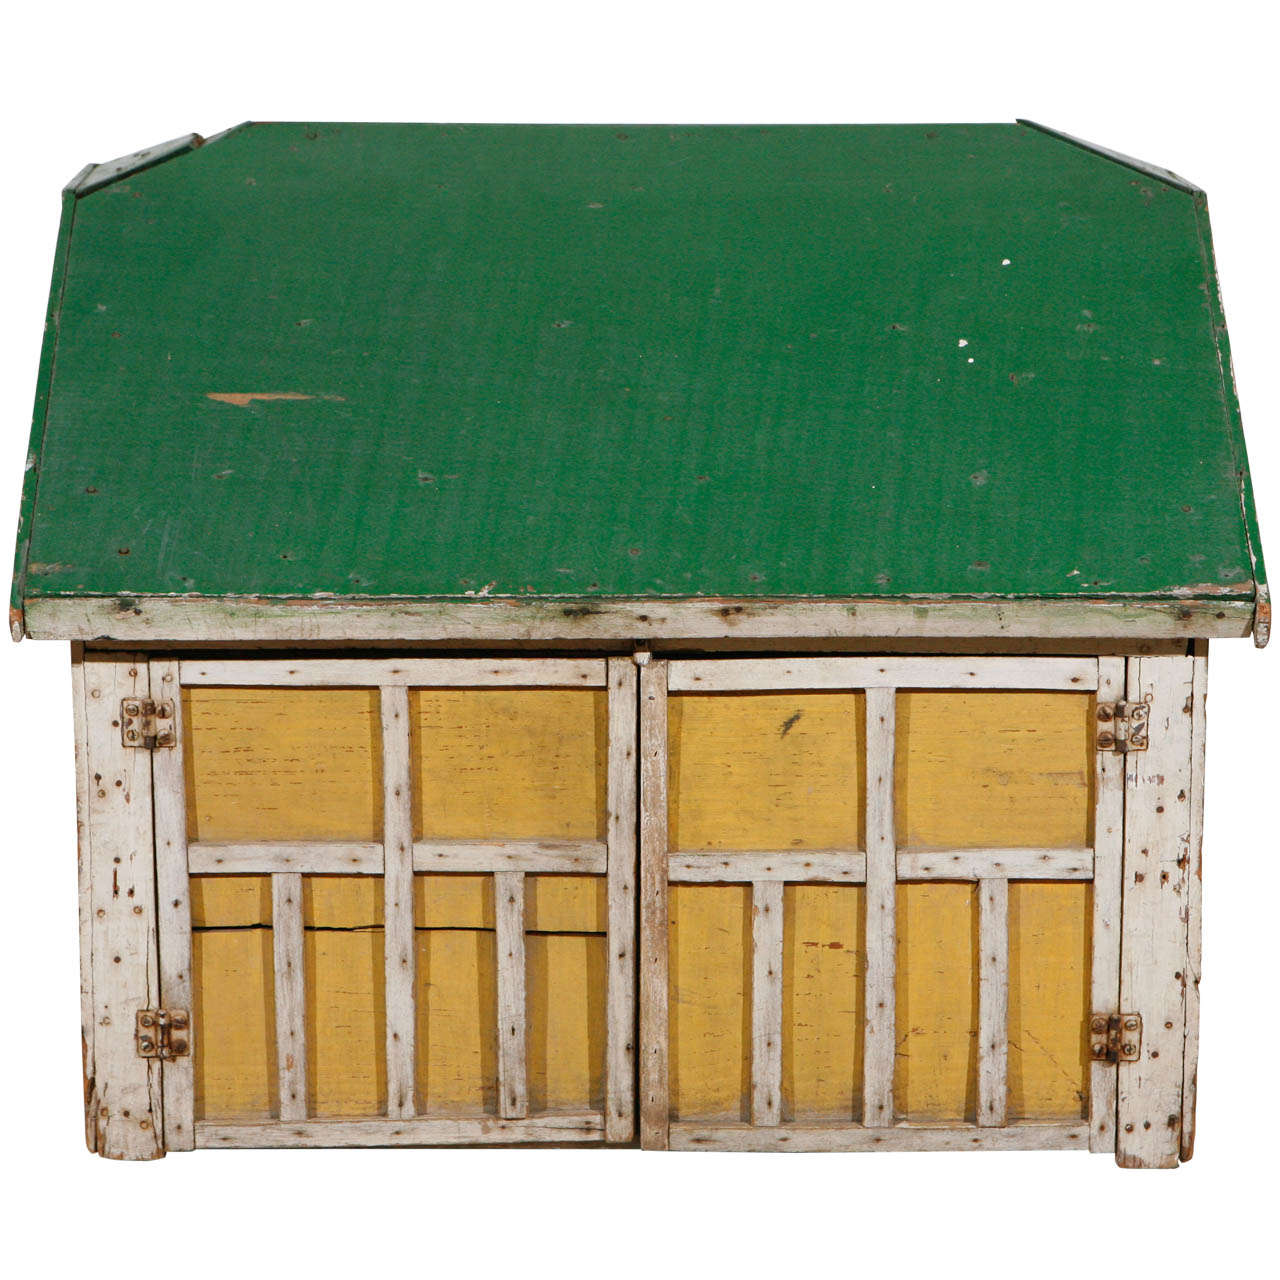 Early 20th Century, Model Barn or Garage, circa 1910-1930